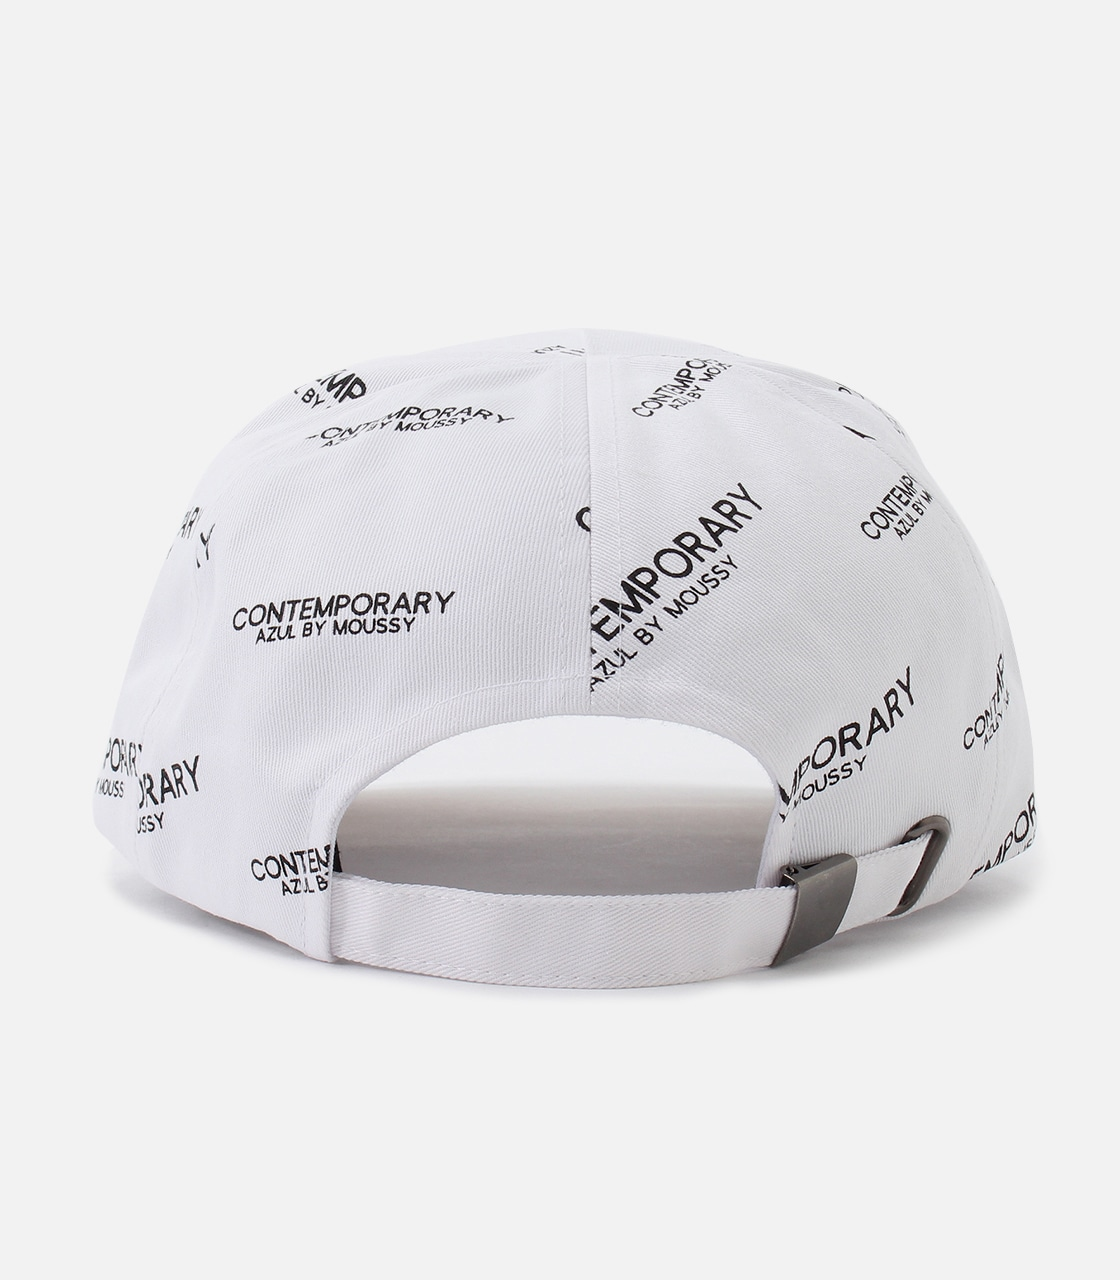 【AZUL BY MOUSSY】CONTEMPORARY 6PANEL CAP 詳細画像 柄WHT 3